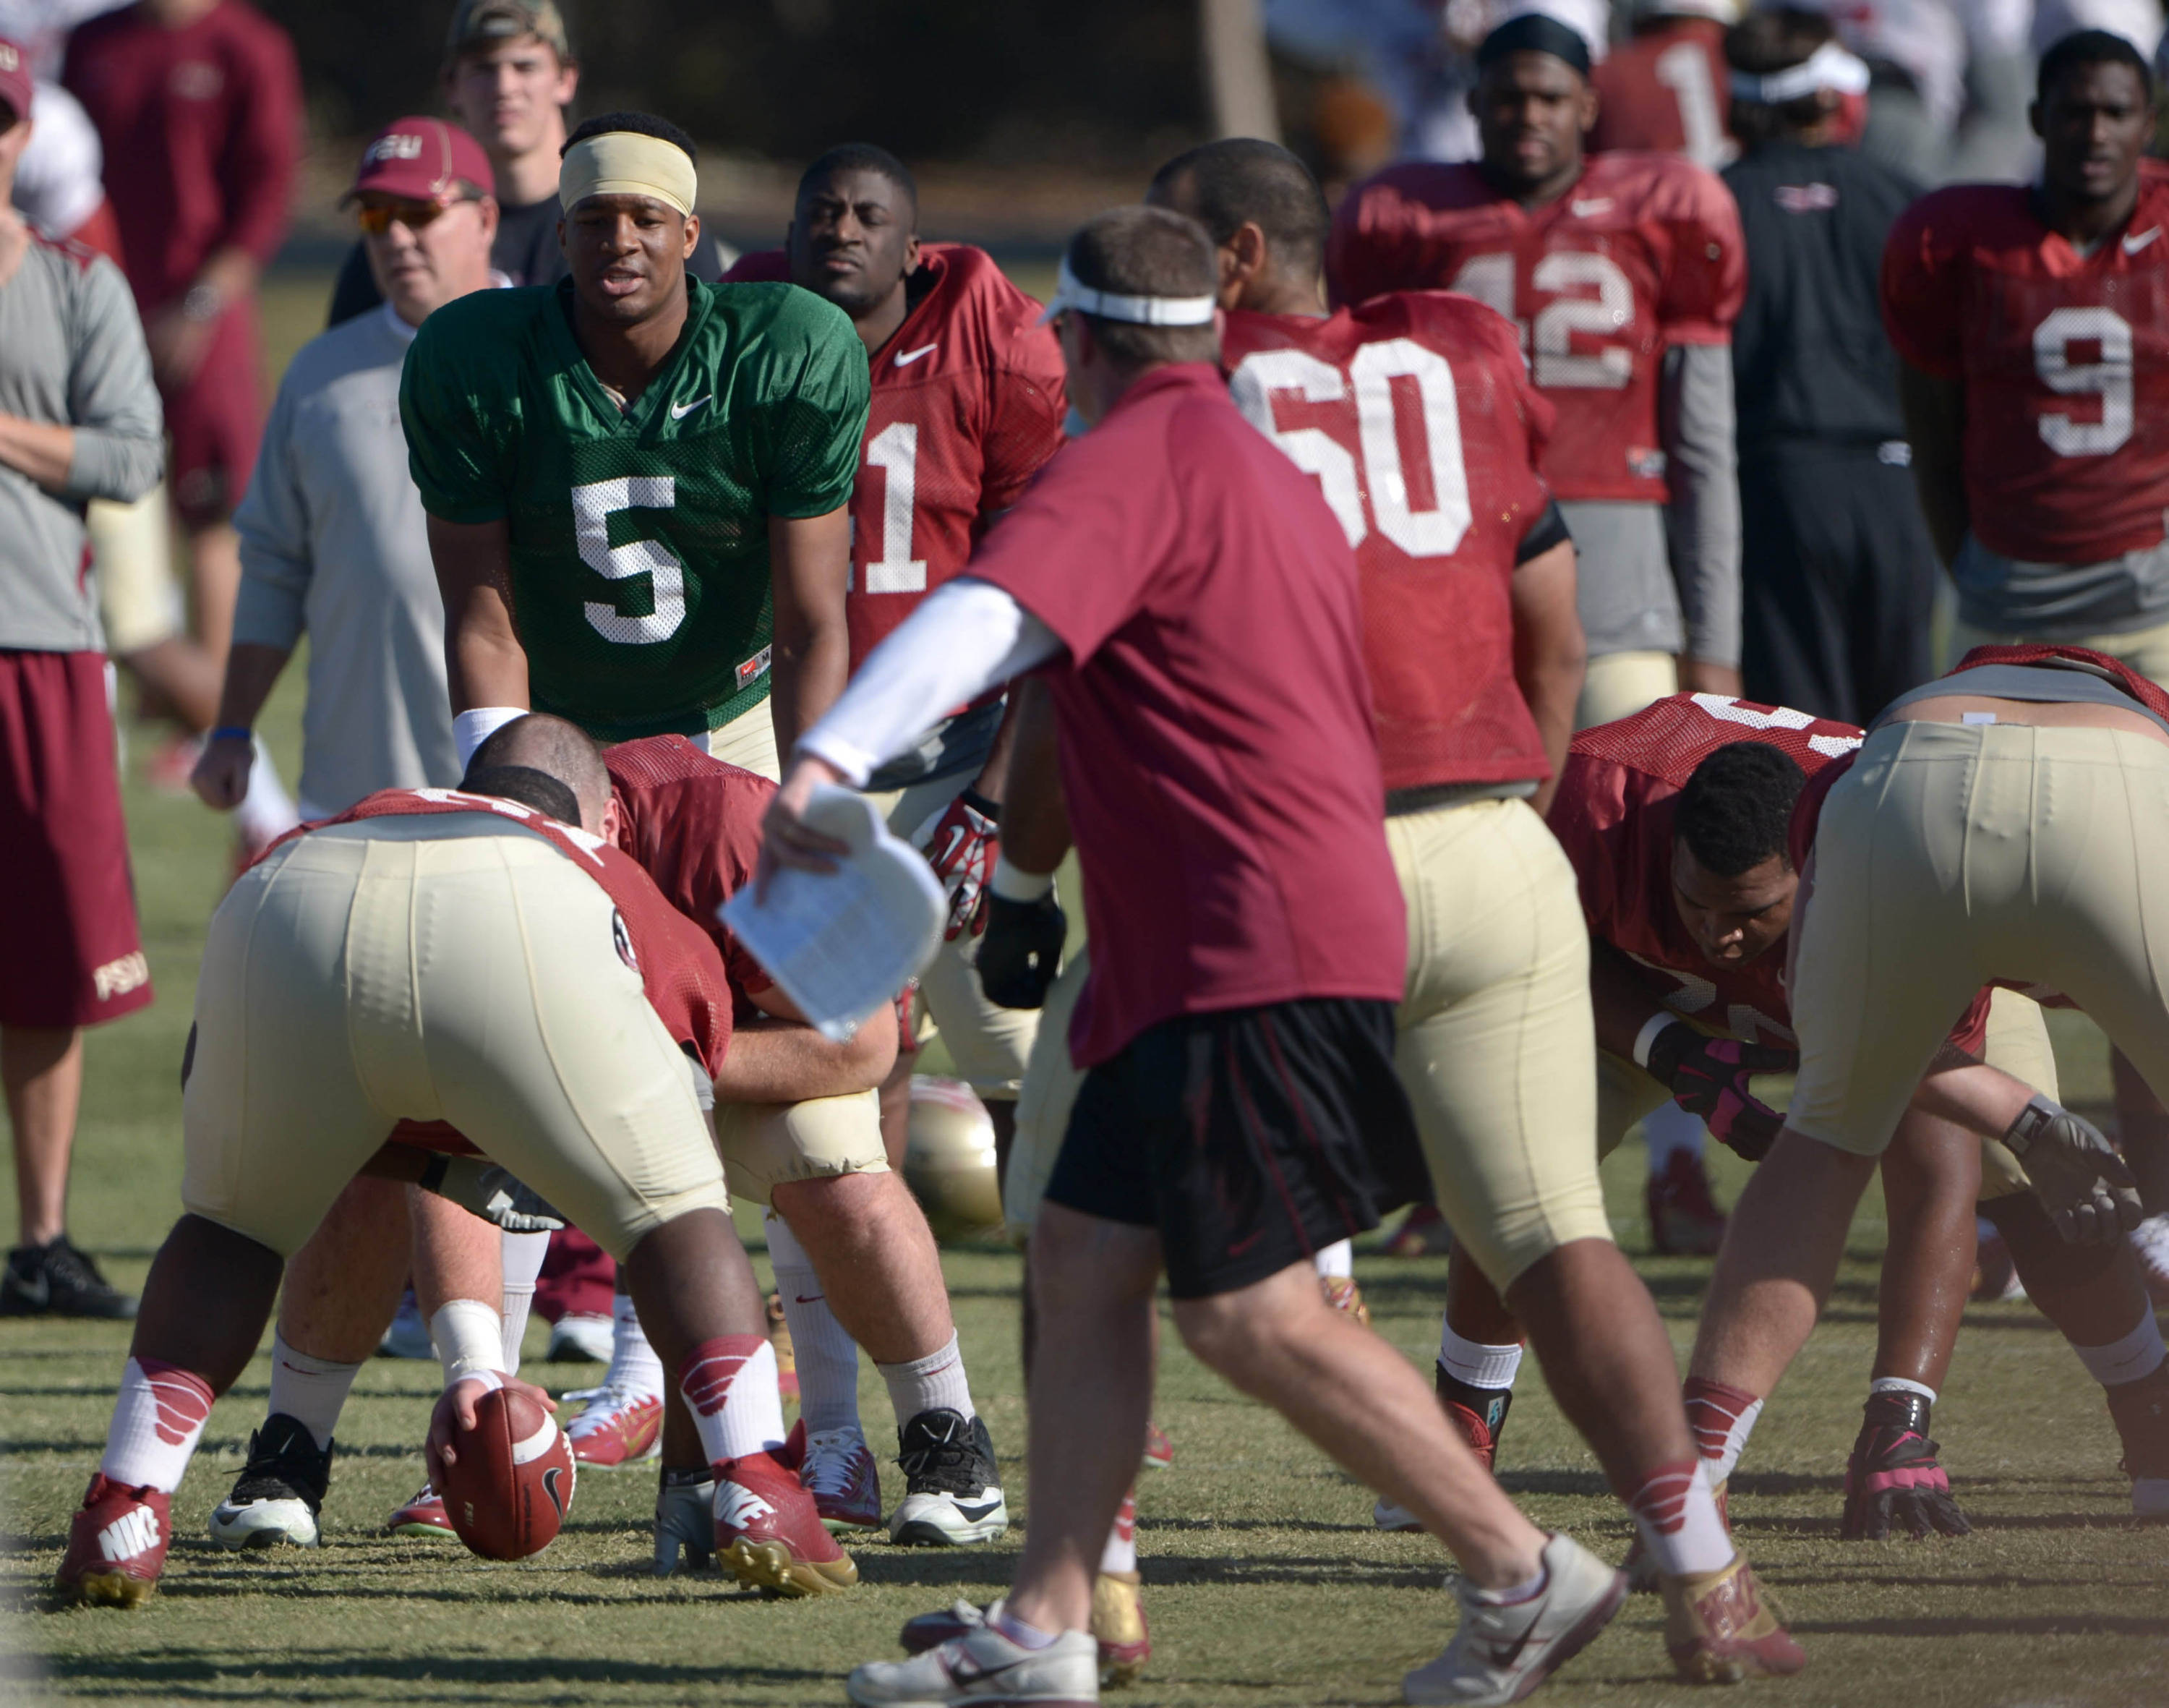 Florida State Seminoles quarterback Jameis Winston (5) takes the snap under the supervision of quarterbacks coach Randy Sanders at practice for the 2014 BCS National Championship at the Jack R. Hammett Sports Complex. Mandatory Credit: Kirby Lee-USA TODAY Sports